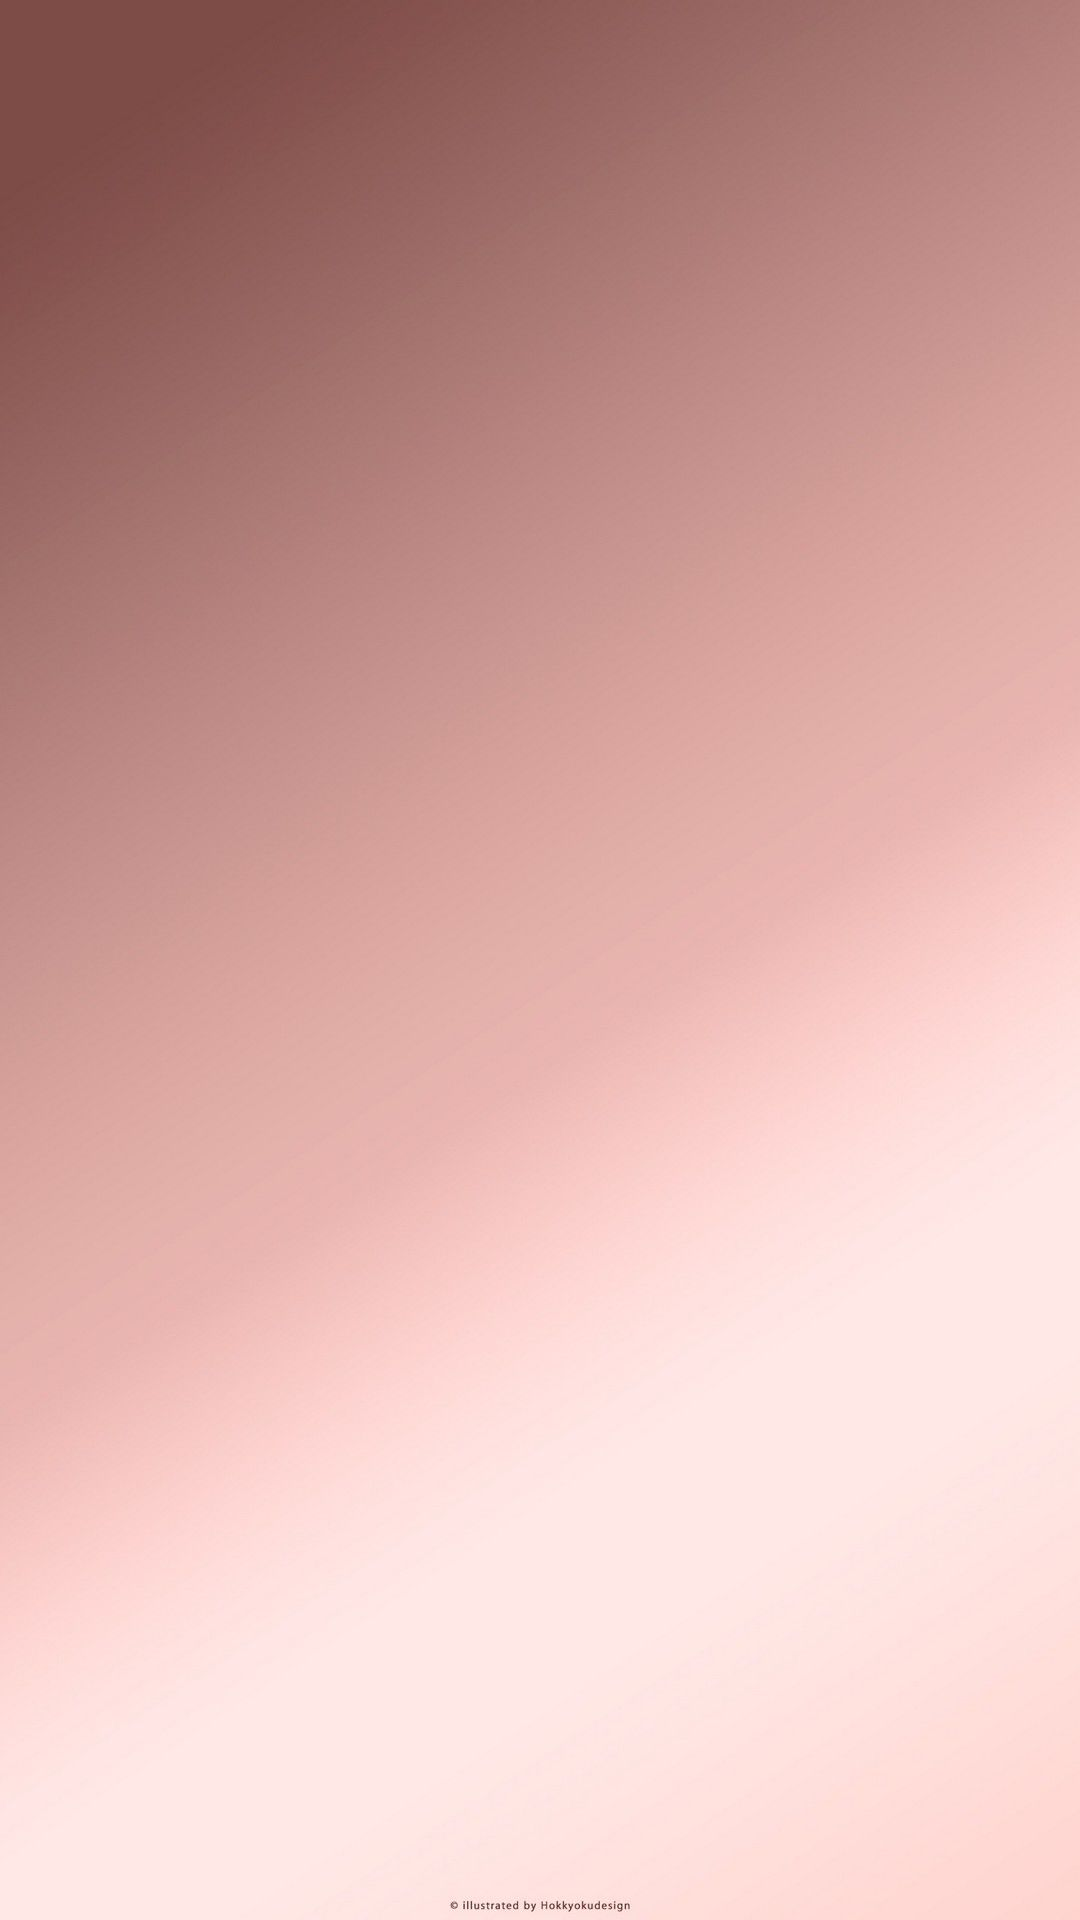 Rose Gold Wallpaper For Android Best Android Wallpapers Rose Gold Wallpaper Gold Wallpaper Iphone Wallpaper